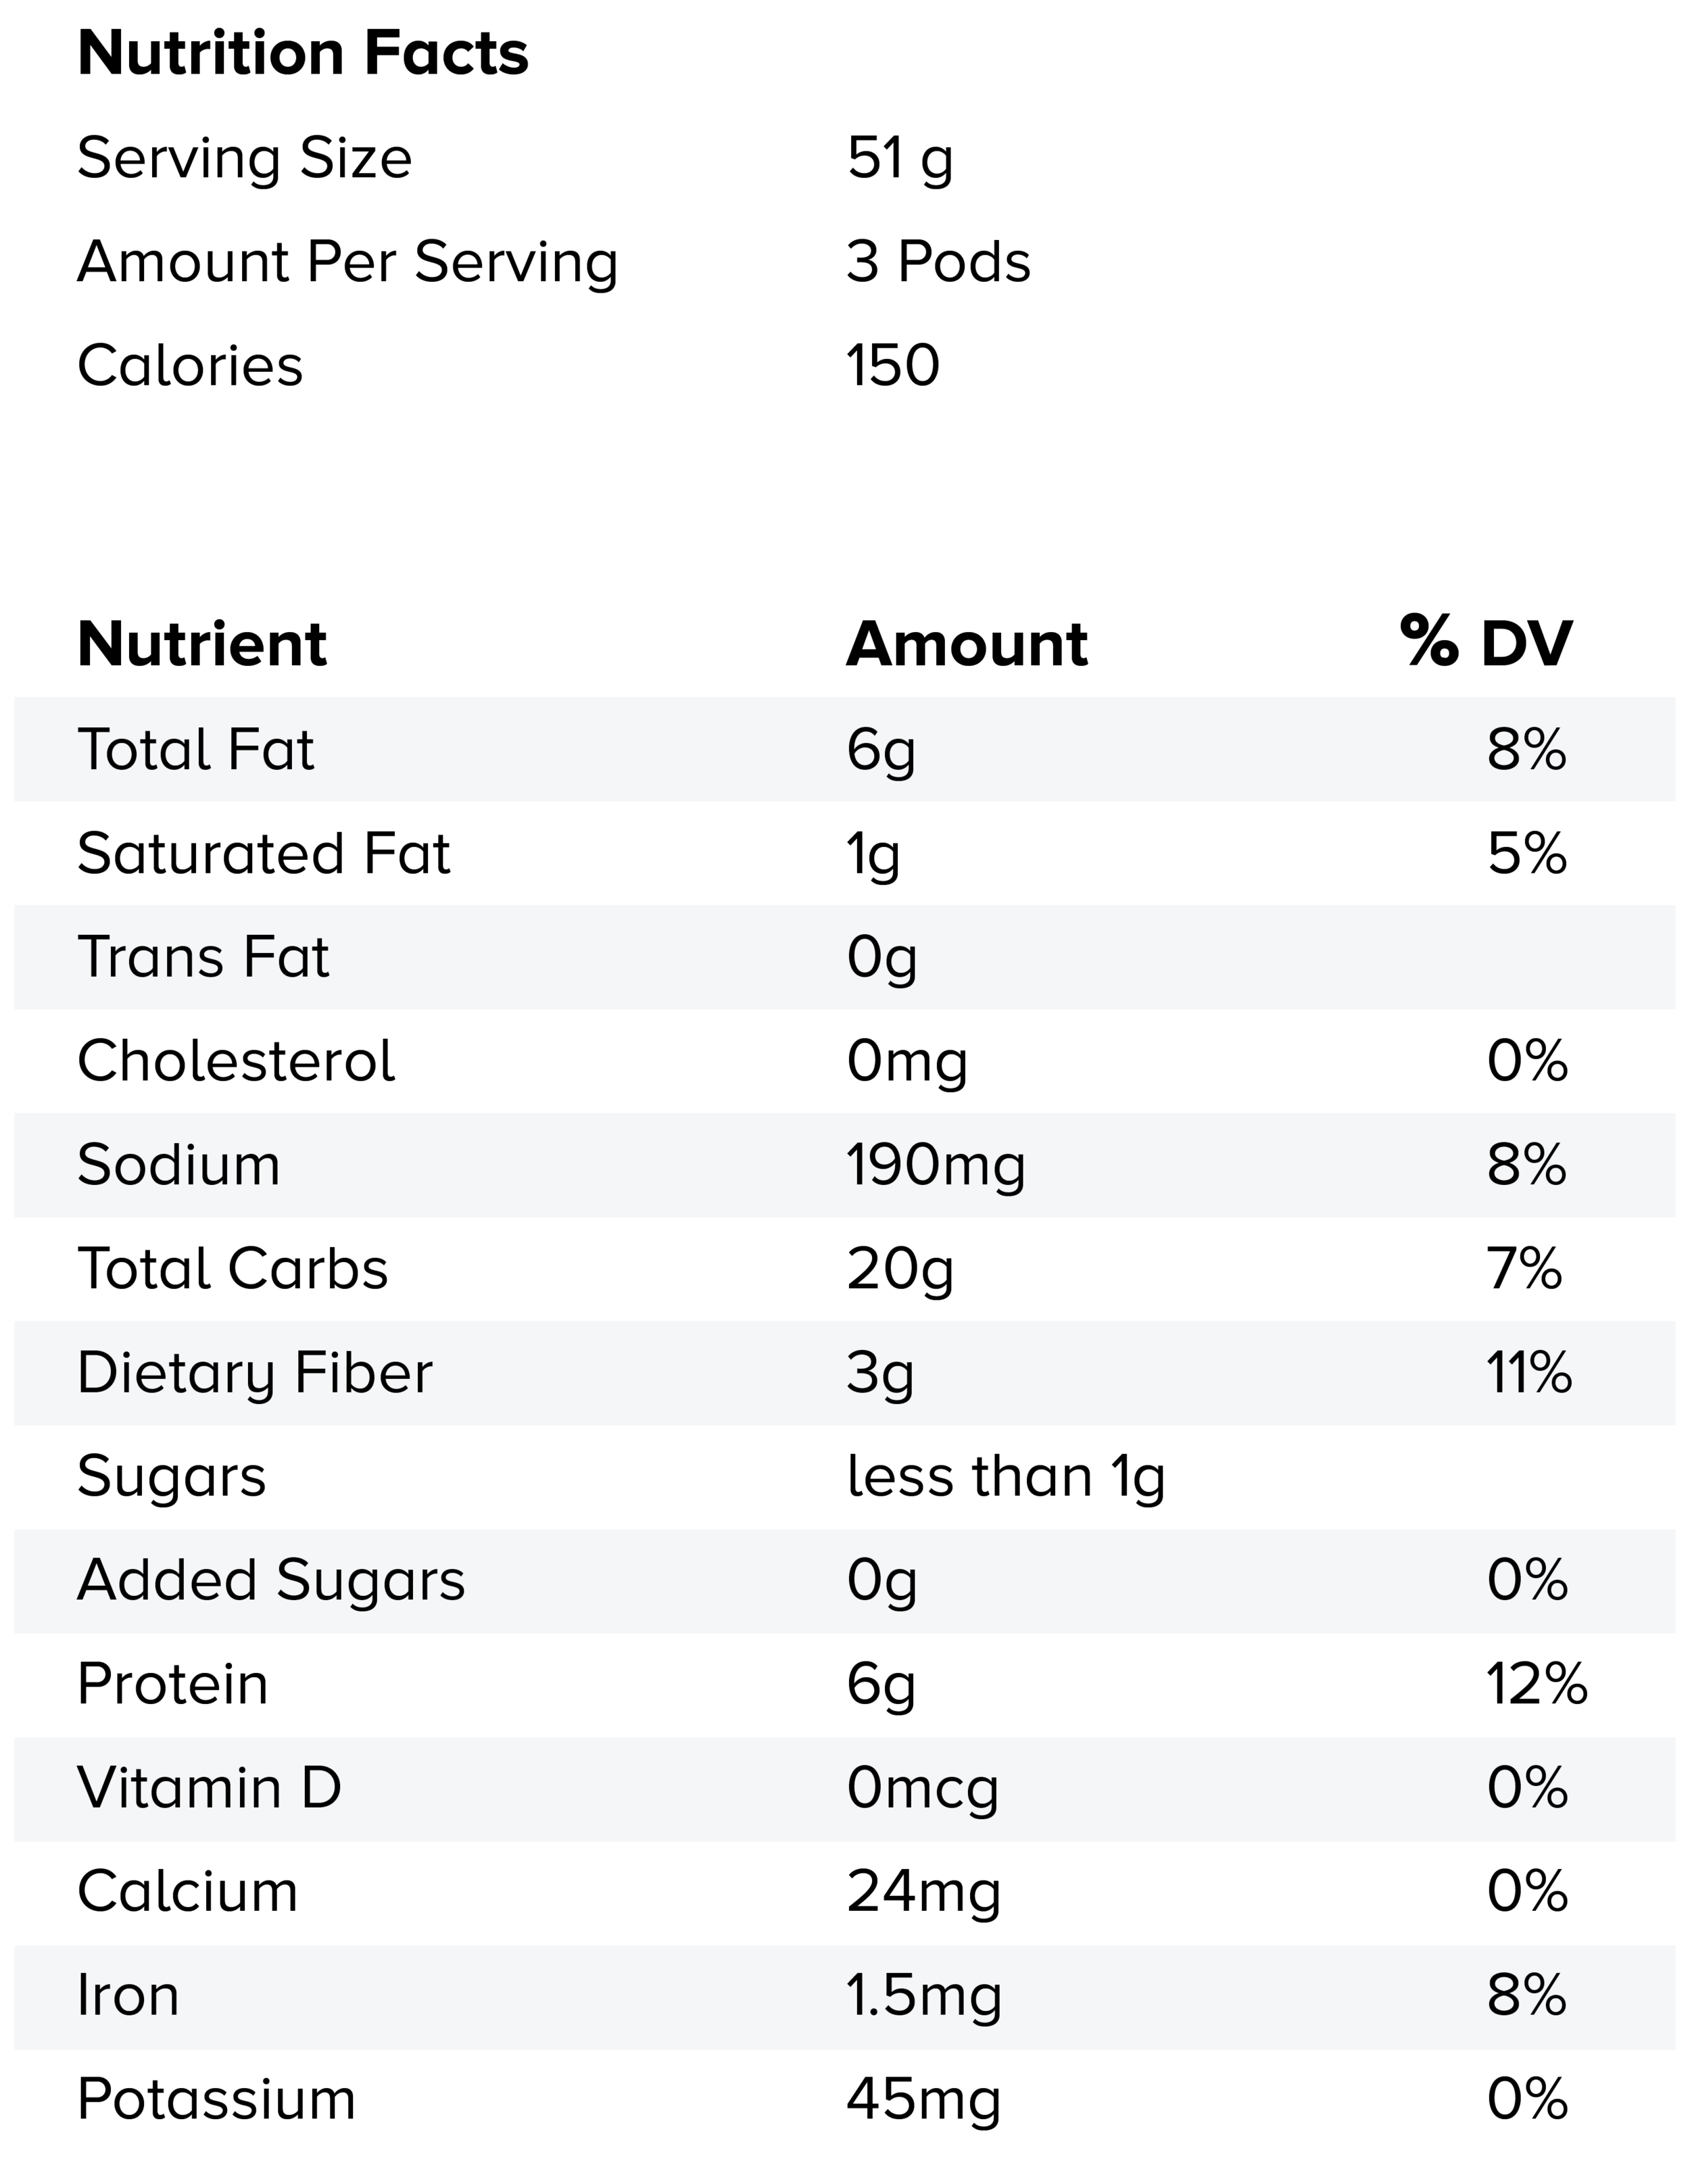 pod nutrition facts web 9-11-17-02.png